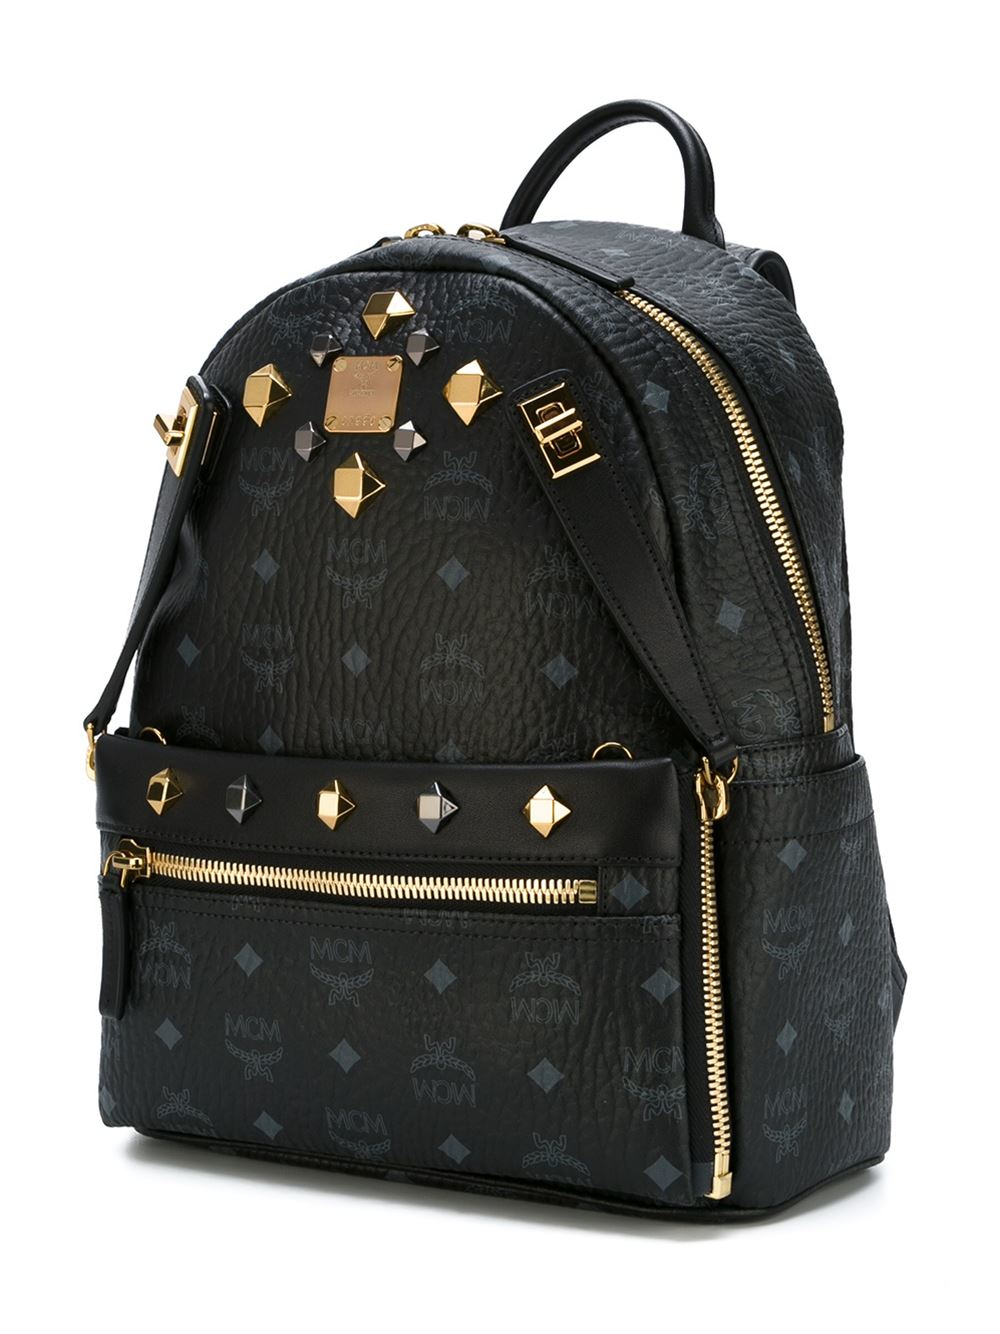 Mcm Studded Backpack In Black Lyst